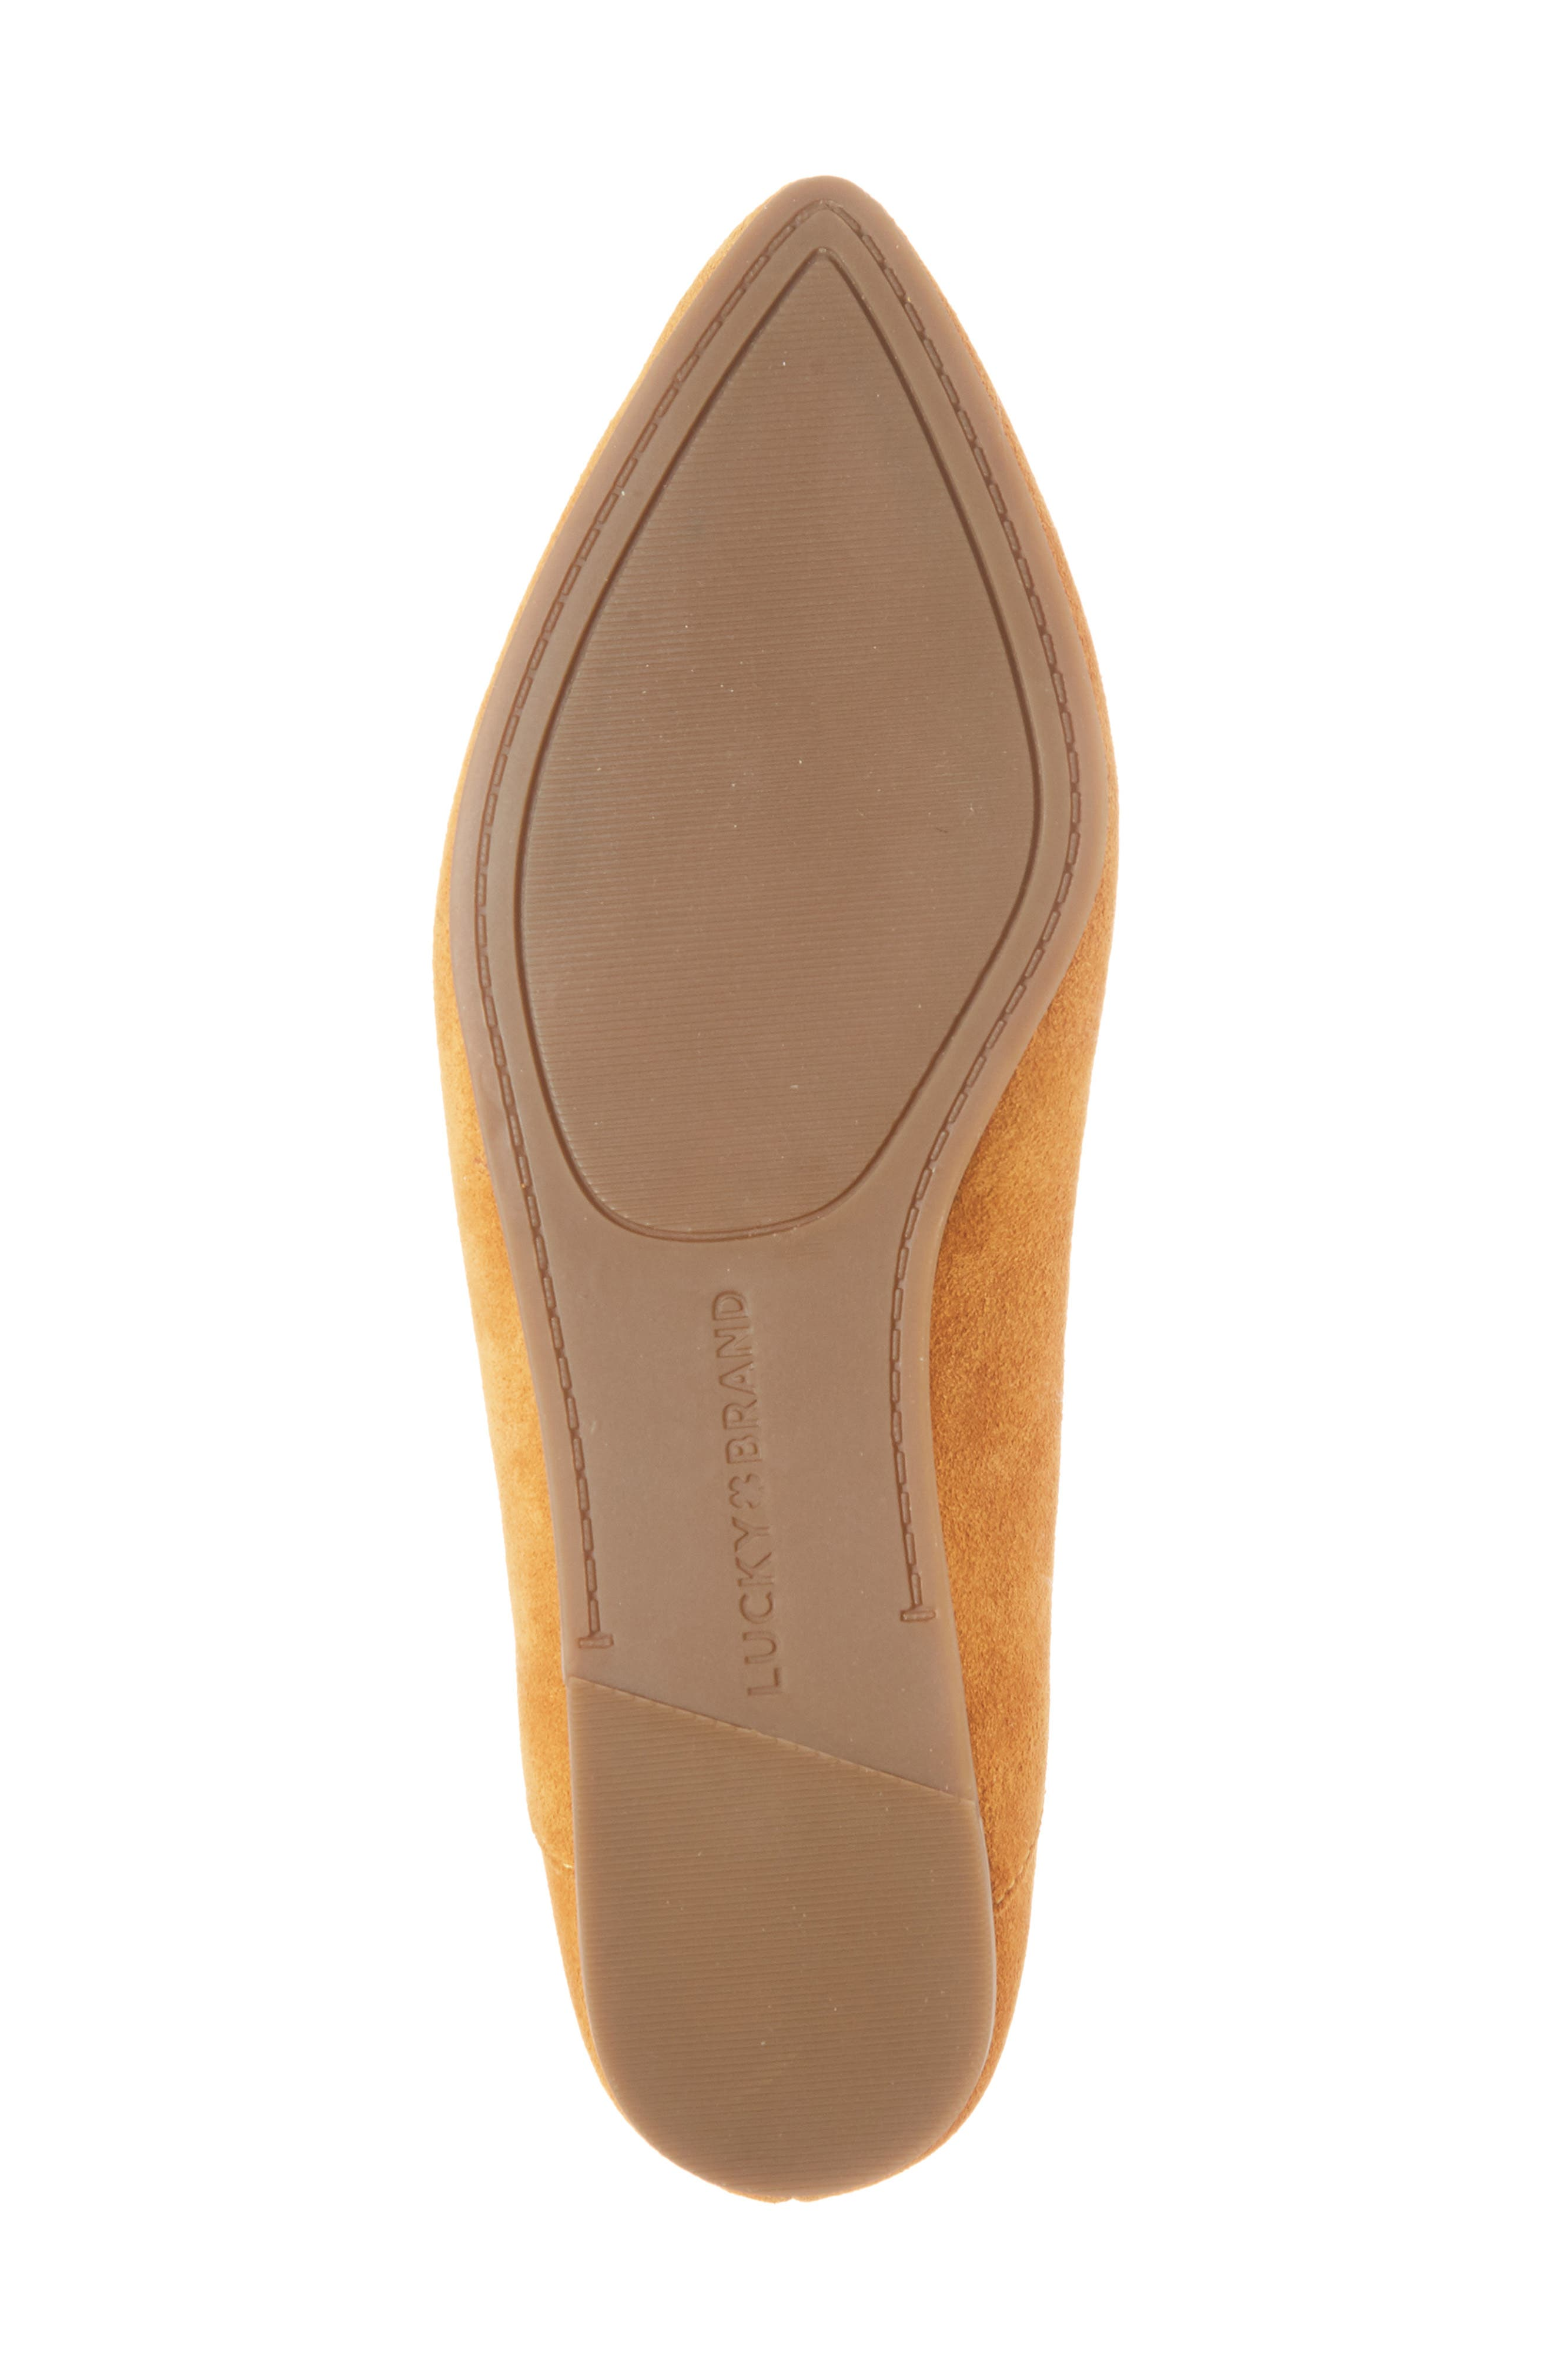 Bylando Flat,                             Alternate thumbnail 6, color,                             Inca Gold Suede